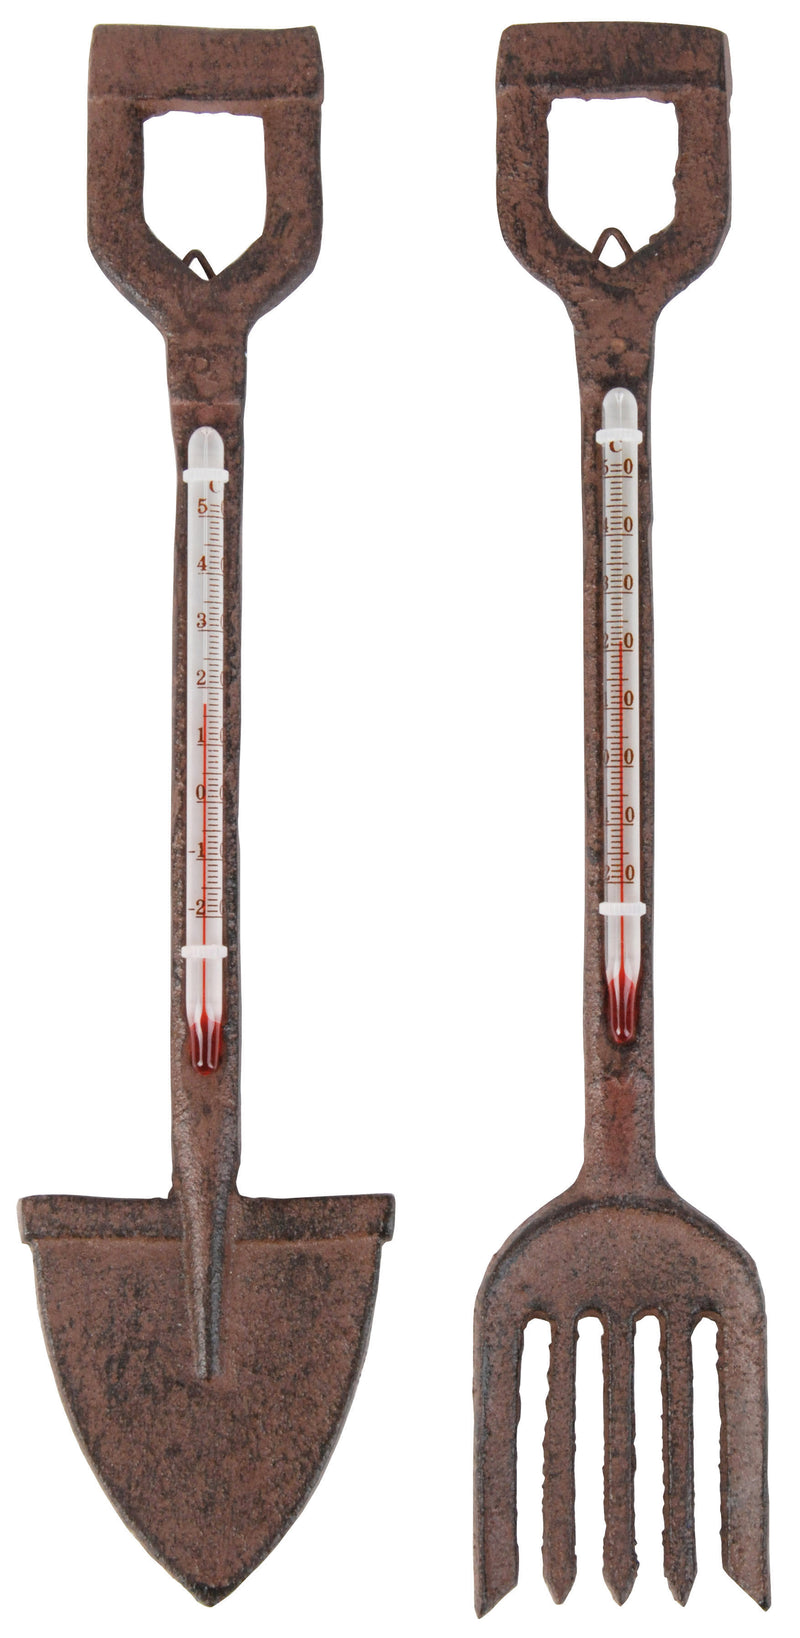 Gifts & Accessories - Cast Iron Thermometer - Garden Fork - Seeds to Sow Limited